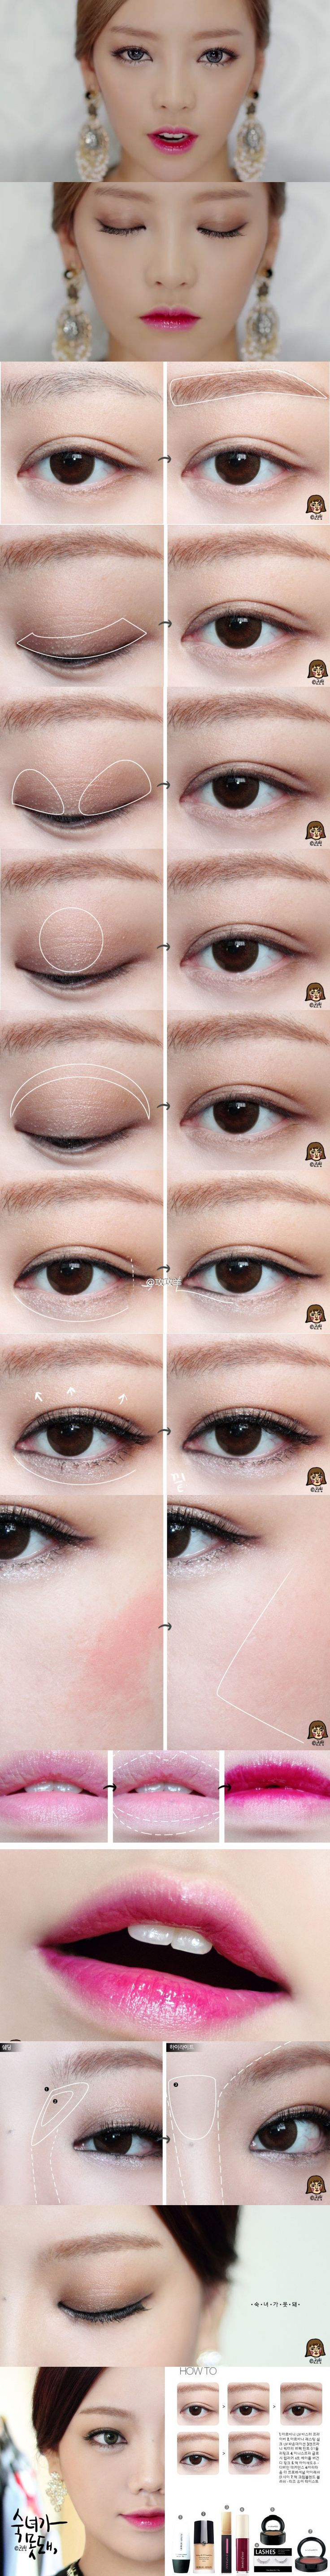 """Tutorial for Goo Hara's makeup in the """"Damaged Lady"""" mv - the eyeliner is pretty unique!"""